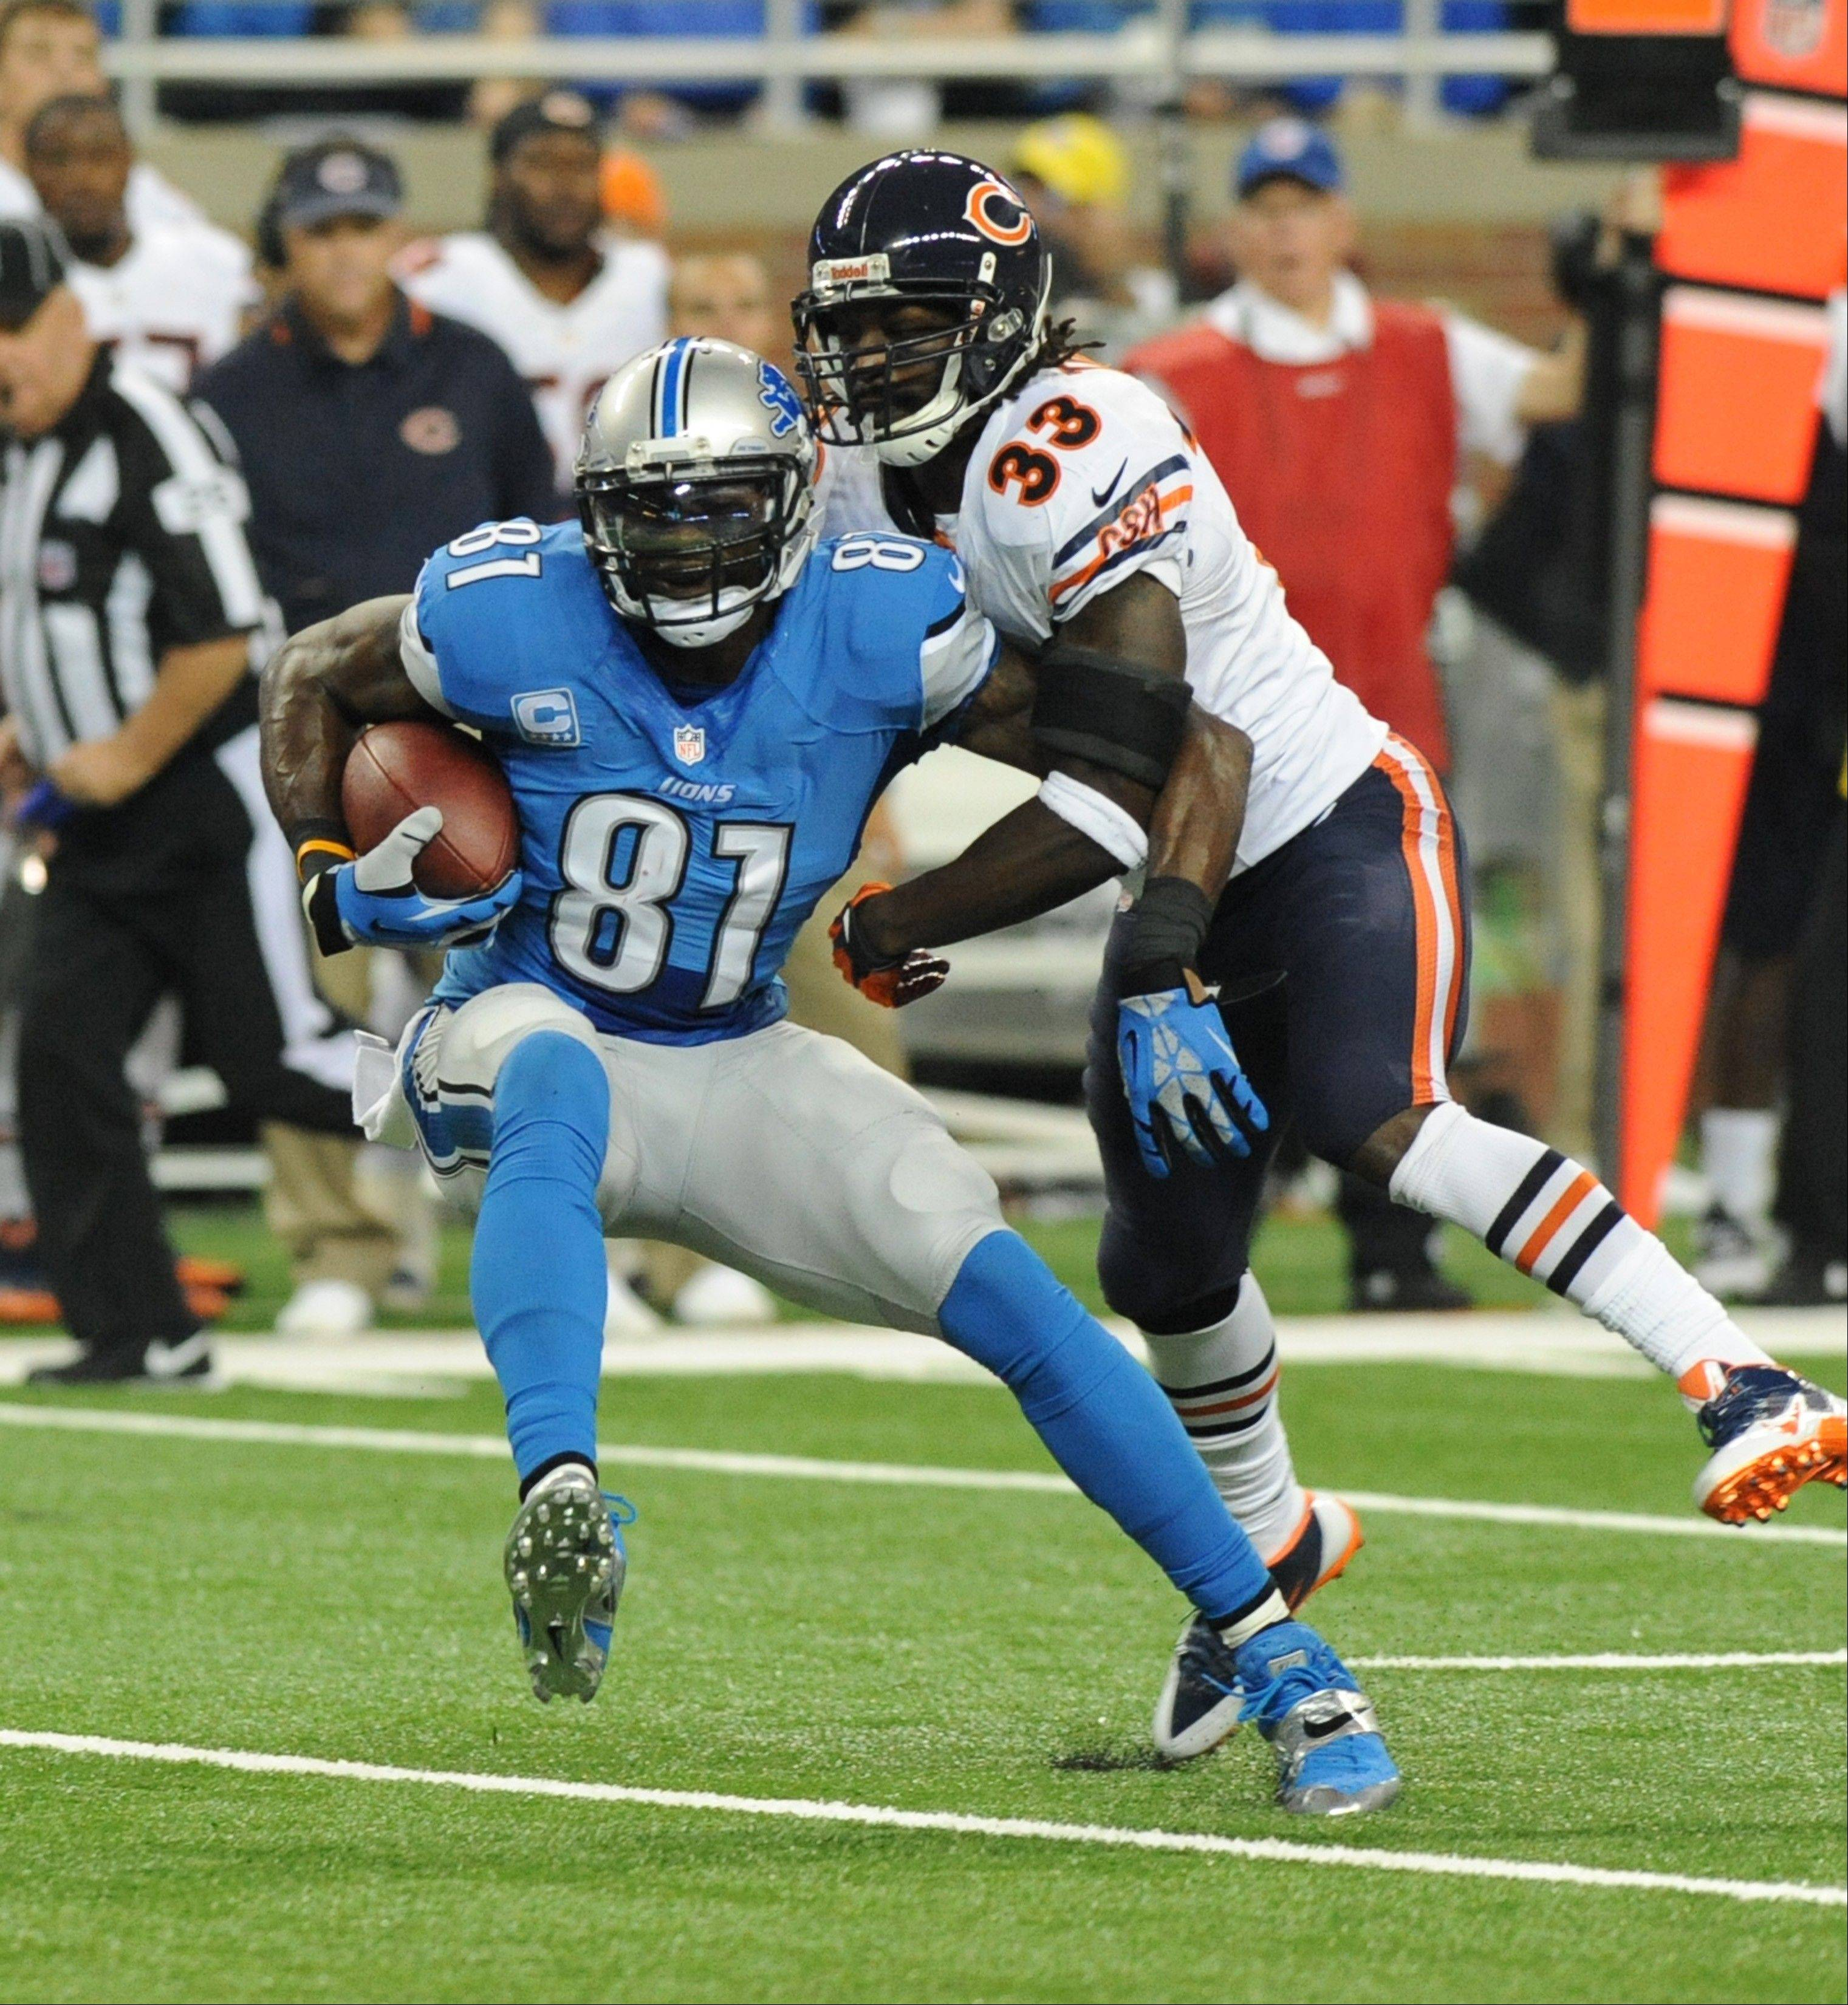 Detroit Lions wide receiver Calvin Johnson (81) makes a reception in front of Chicago Bears cornerback Charles Tillman (33) during the first quarter.